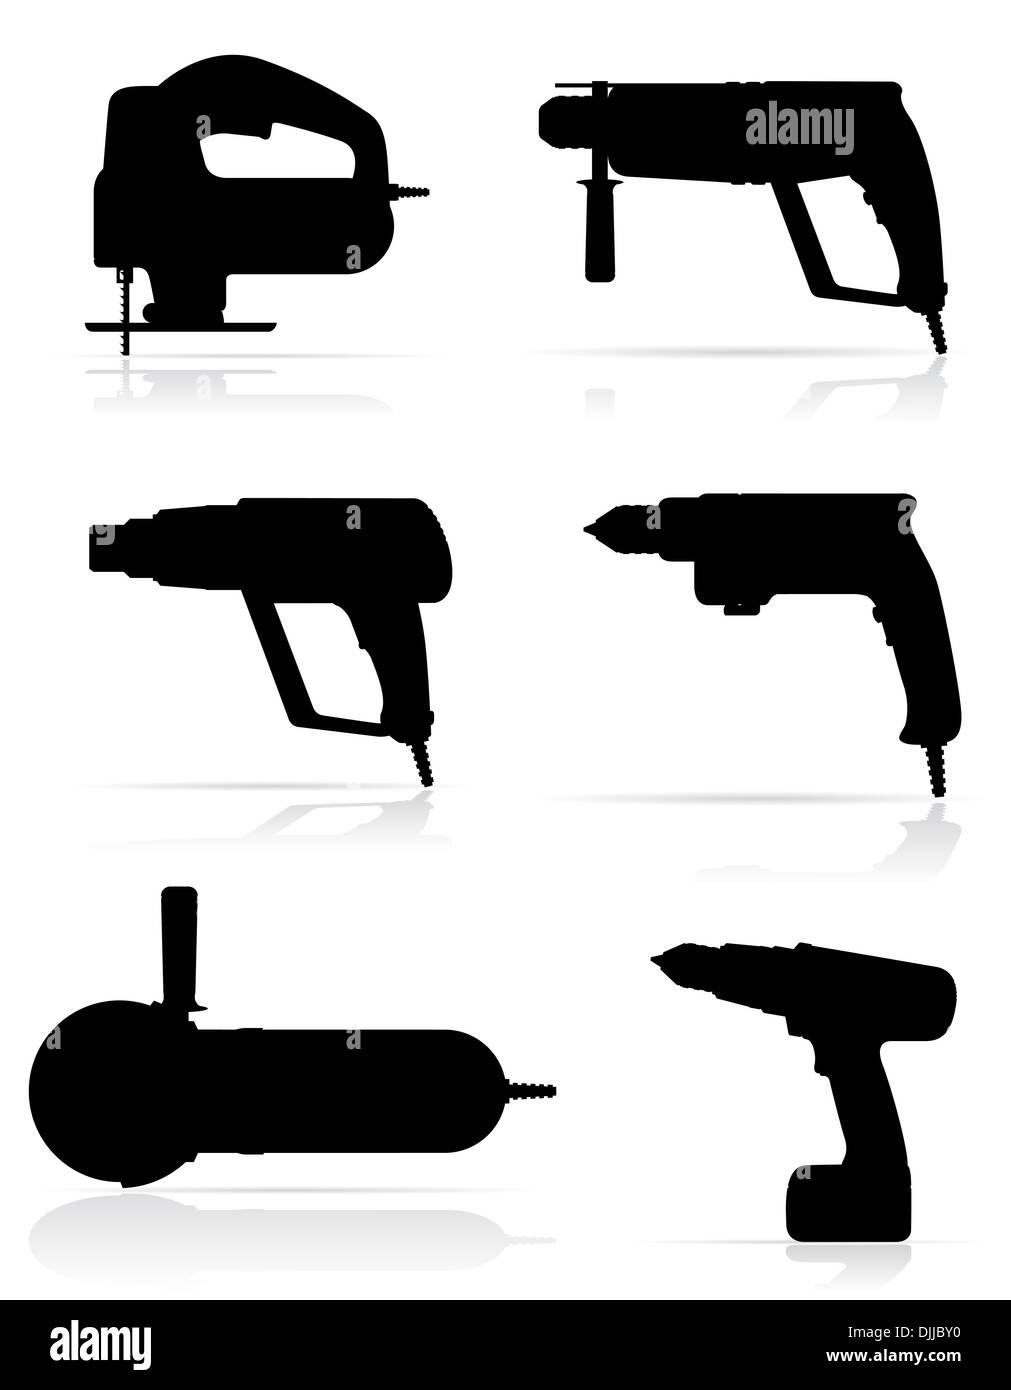 electric tools black silhouette set icons illustration isolated on white background - Stock Image